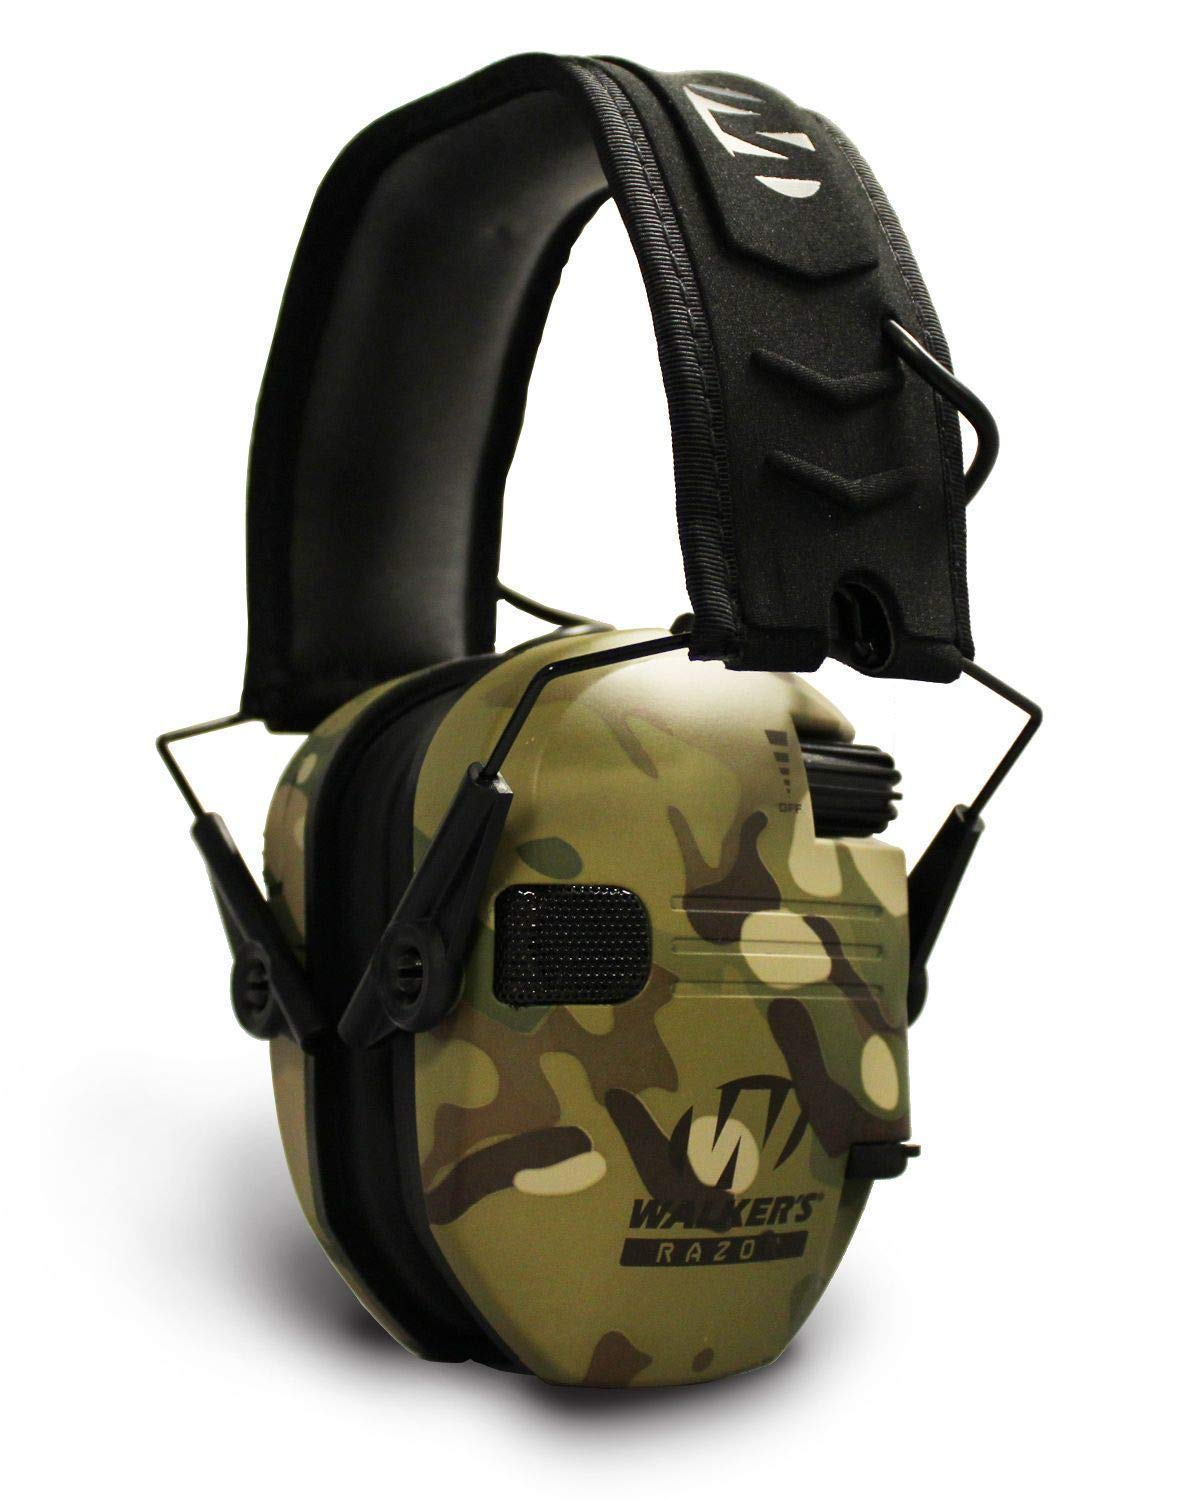 Walkers Razor Slim Electronic Shooting Hearing Protection Muff (Sound Amplification and Suppression) with Protective Case, Tan by Walkers (Image #3)